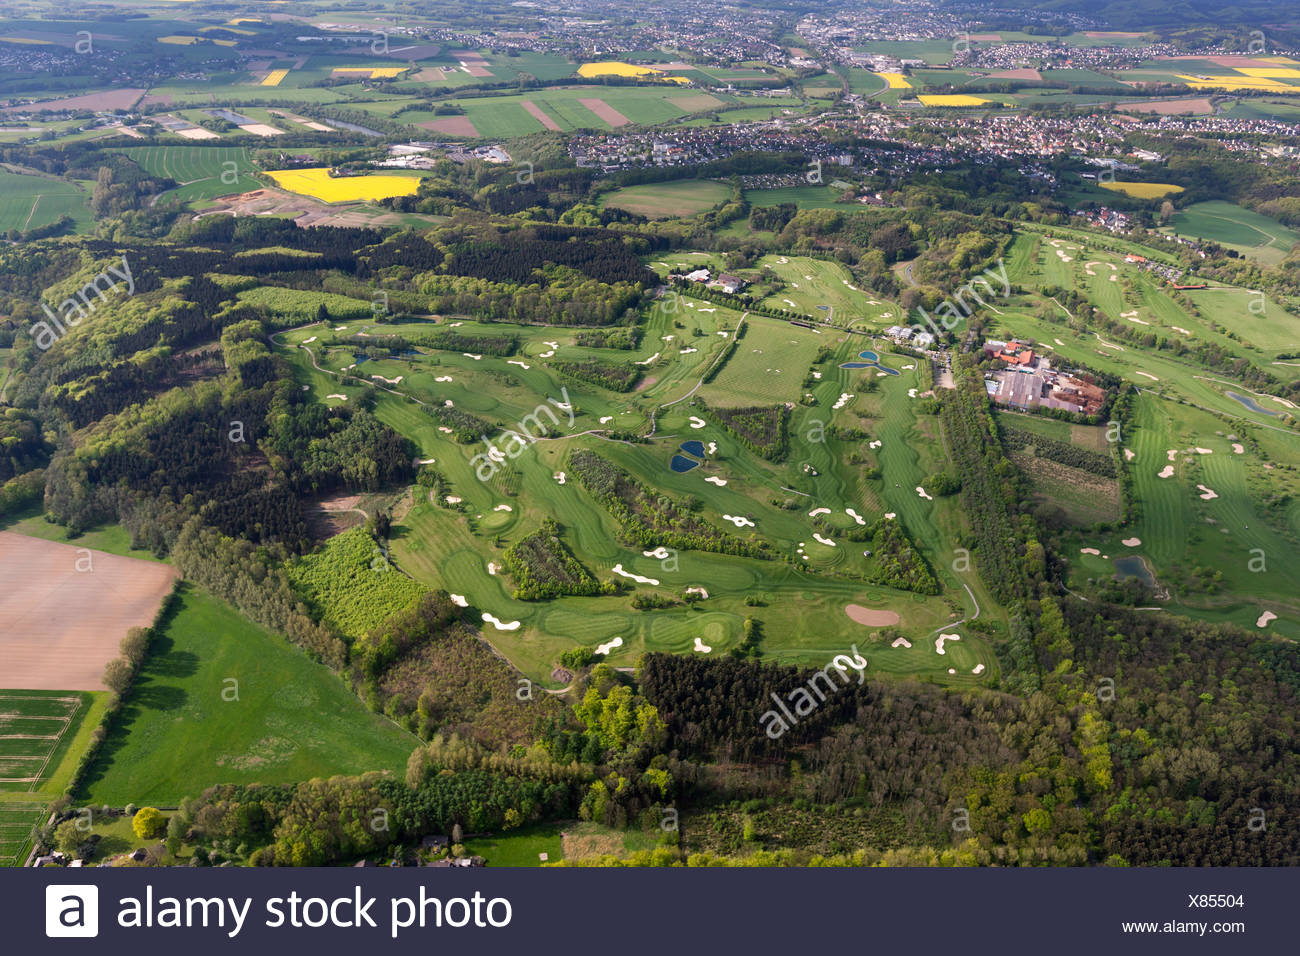 Aerial view, Gut Neuenhof Golf Club, 18-hole golf course and the clubhouse, Froendenberg Ruhr, Ruhr area, North Rhine-Westphalia - Stock Image